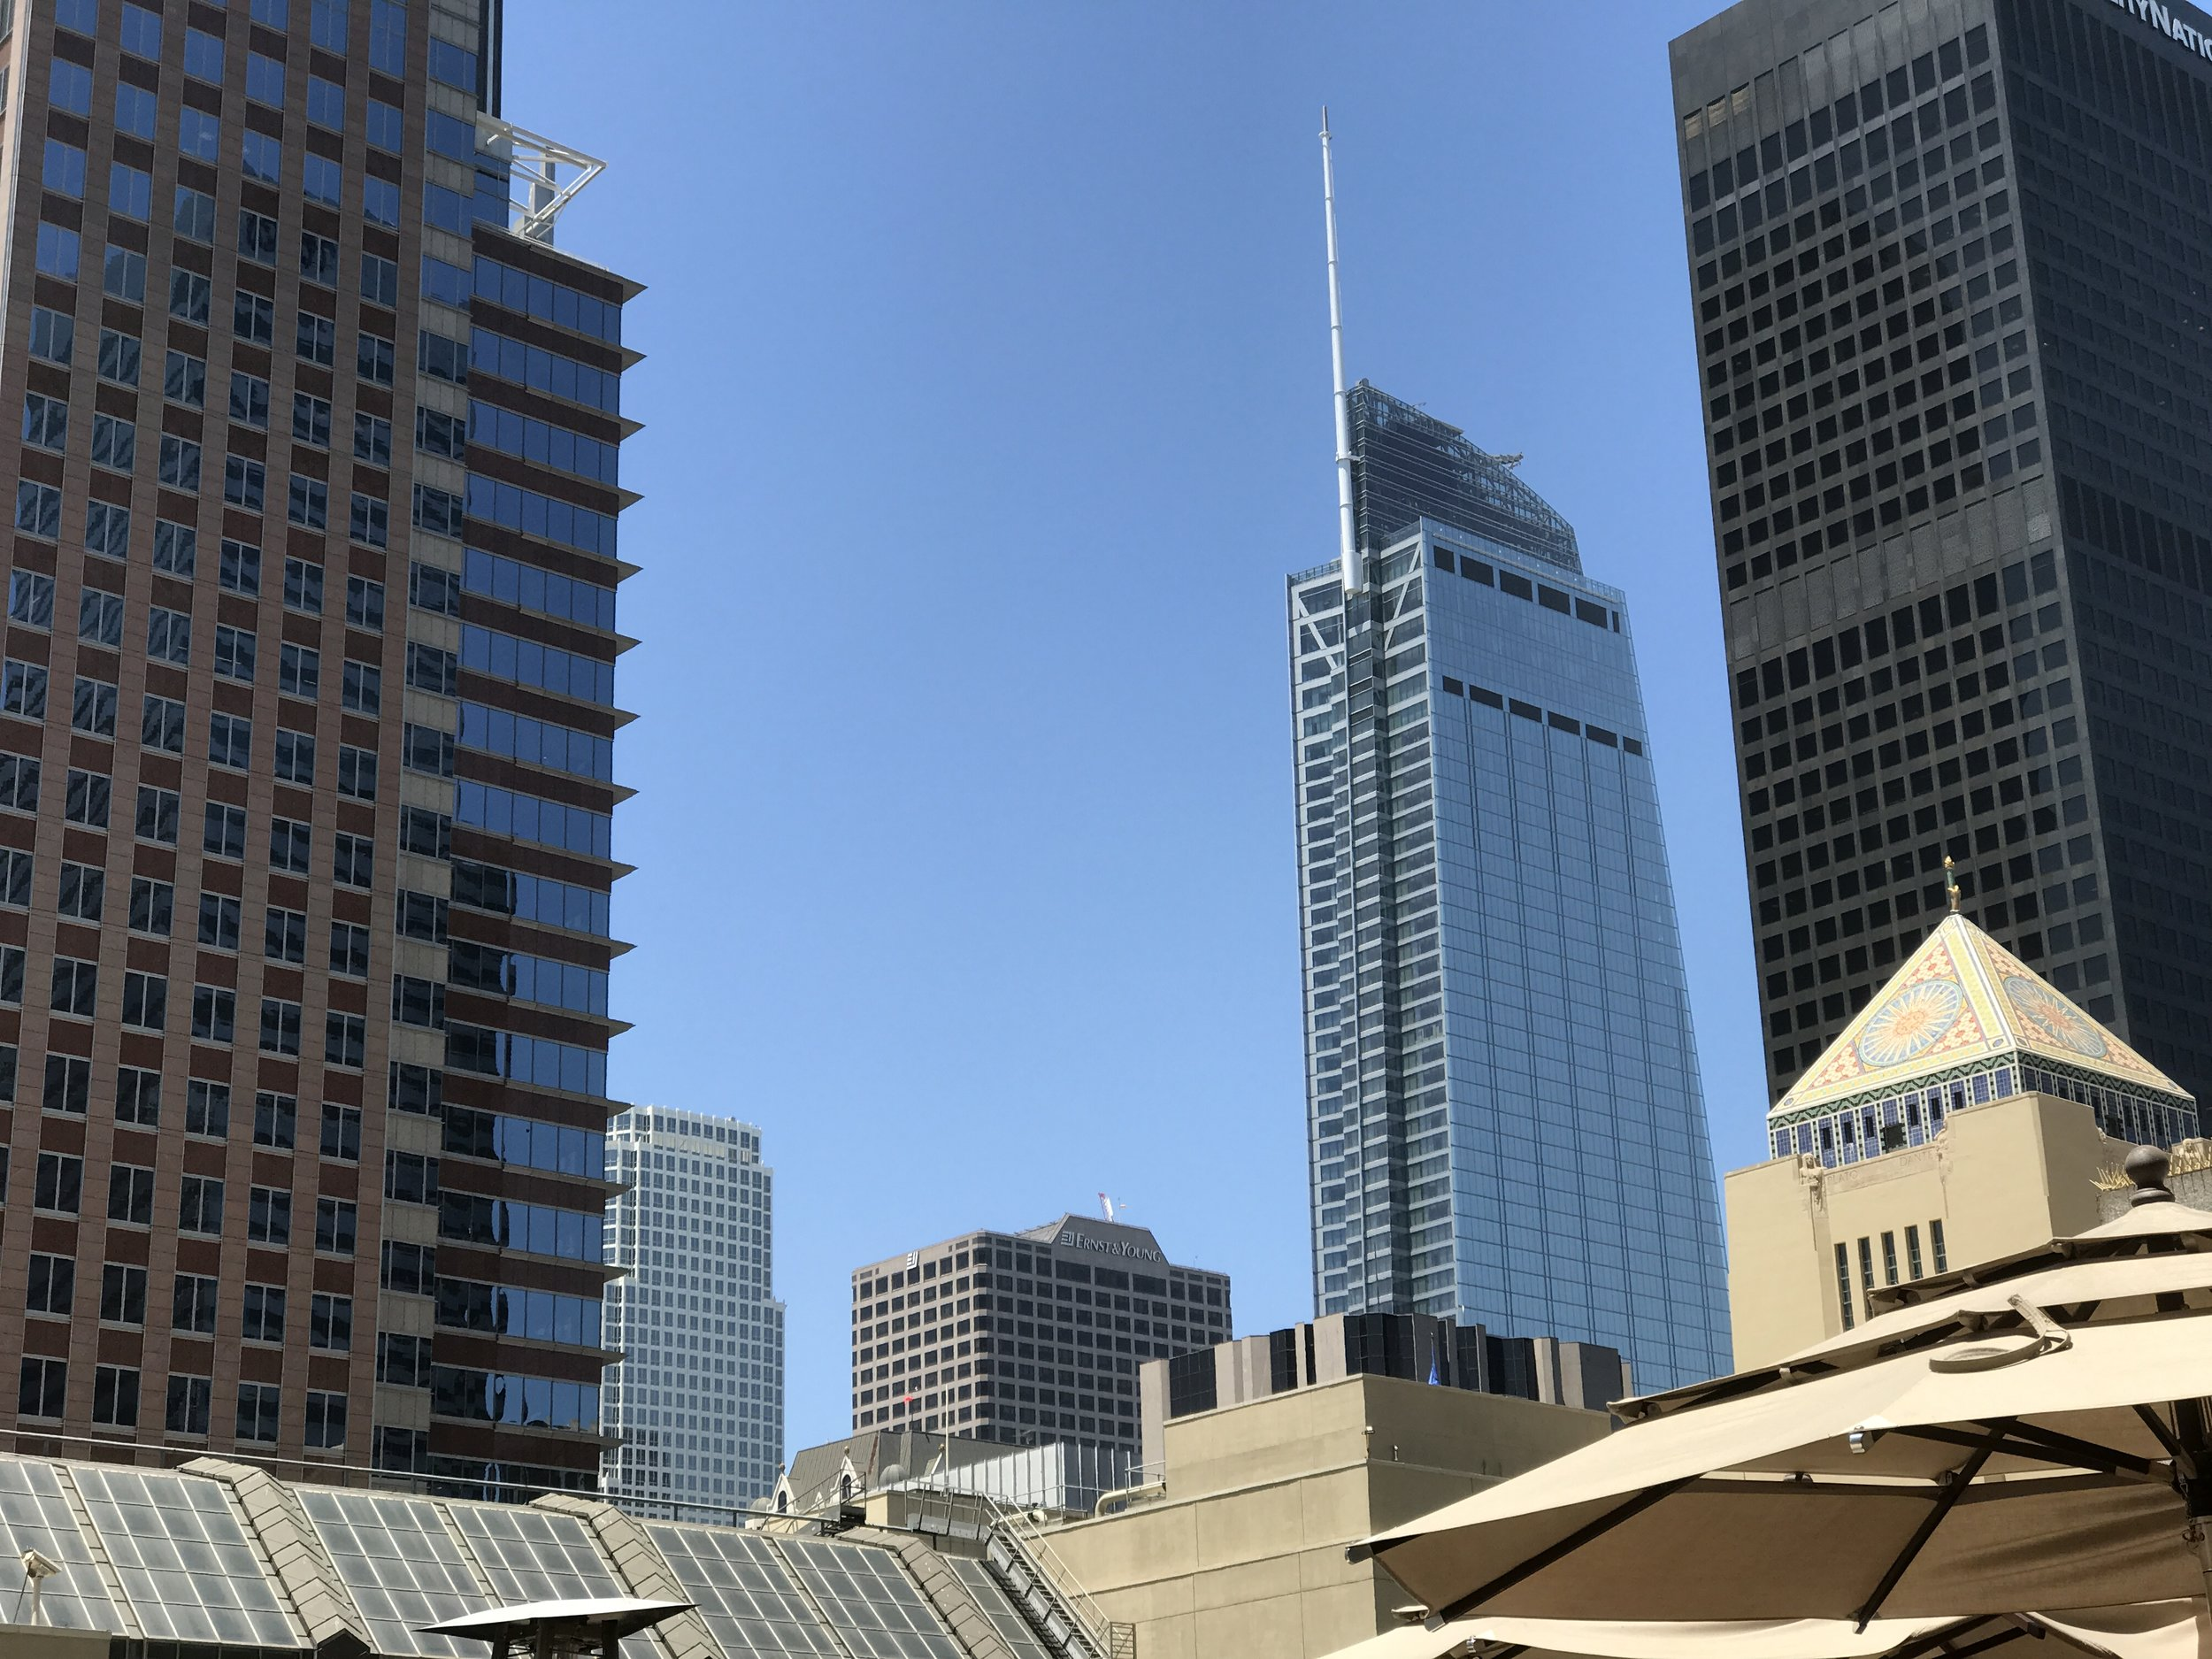 Wilshire Grand Center rising above the Los Angeles Central Library.